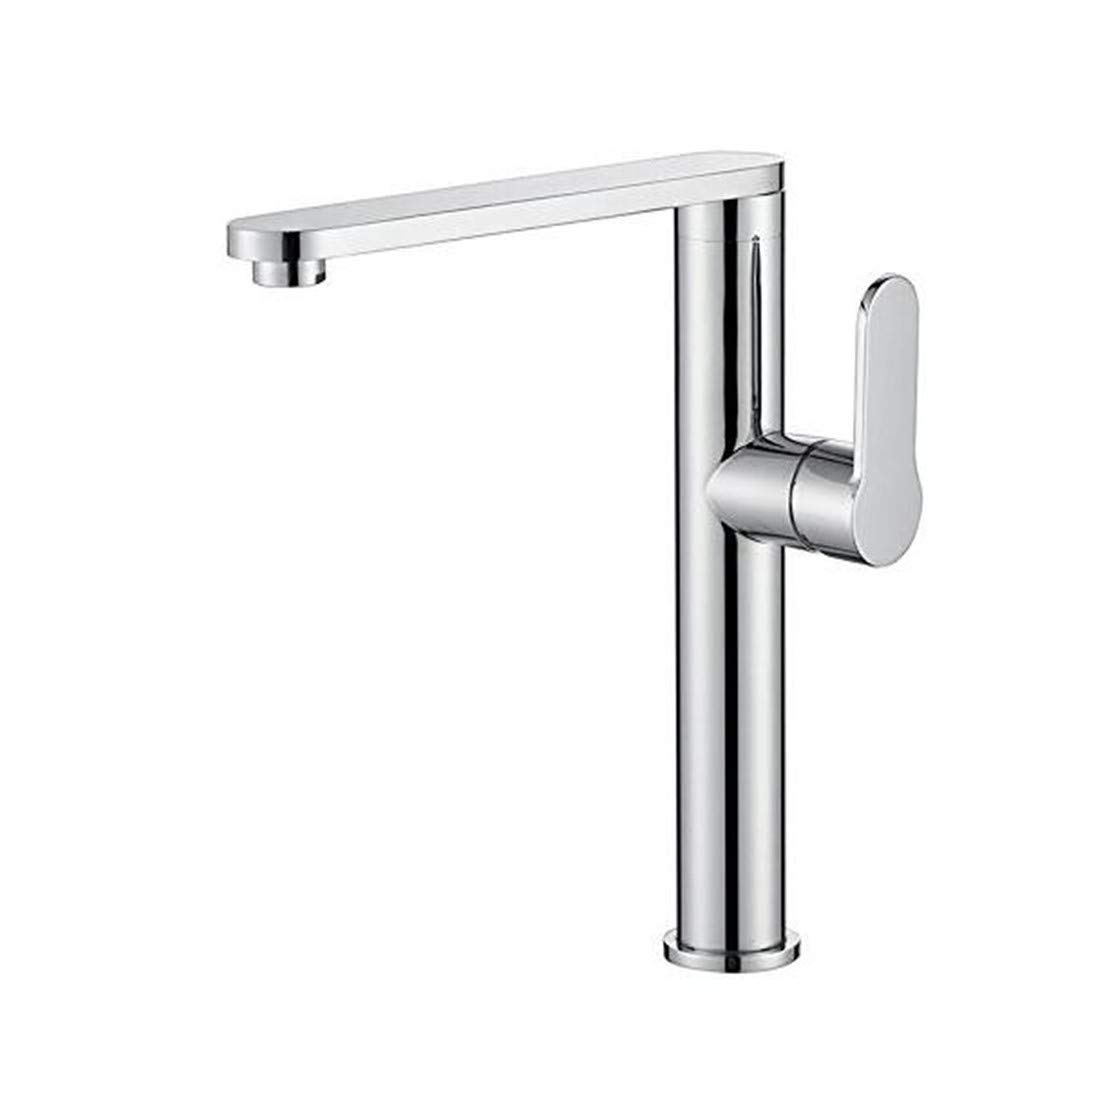 Faucet Modern Plated Mixing Faucet Contemporary Chrome Polished Brass Bathroom Kitchen Lavatory Vanity Vessel Sink Faucet Basin Mixer Tap Faucet